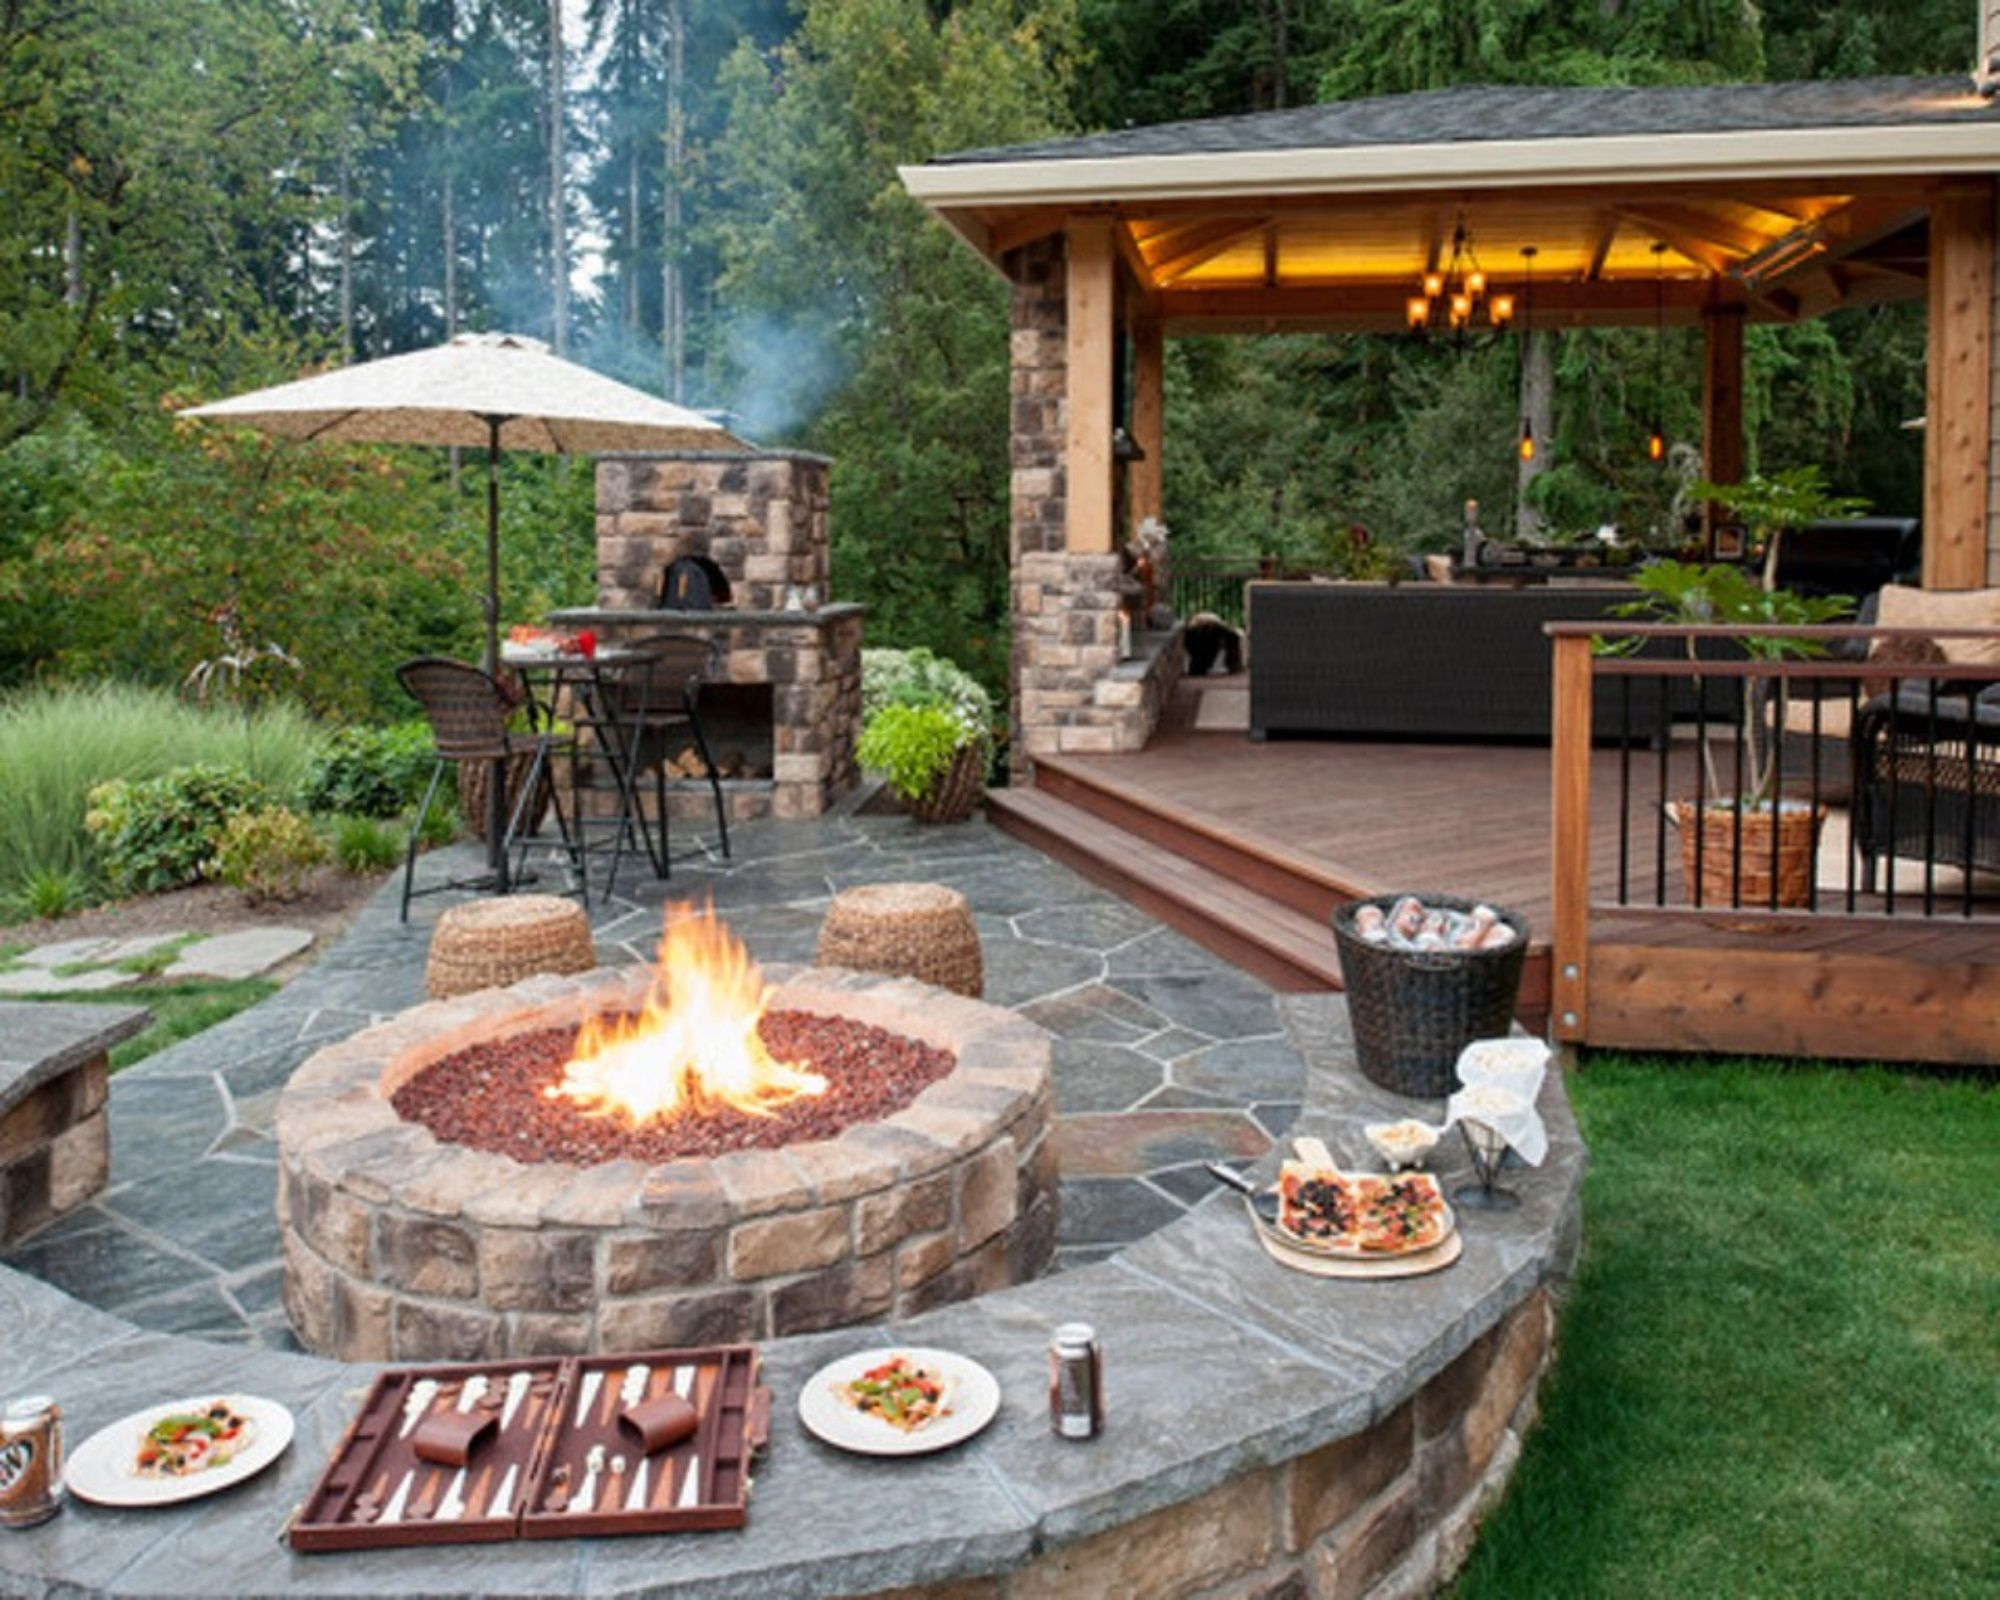 outdoor kitchen patio designs outdoor fire pit patio designs patio ... - Patio Designs With Fire Pit Pictures